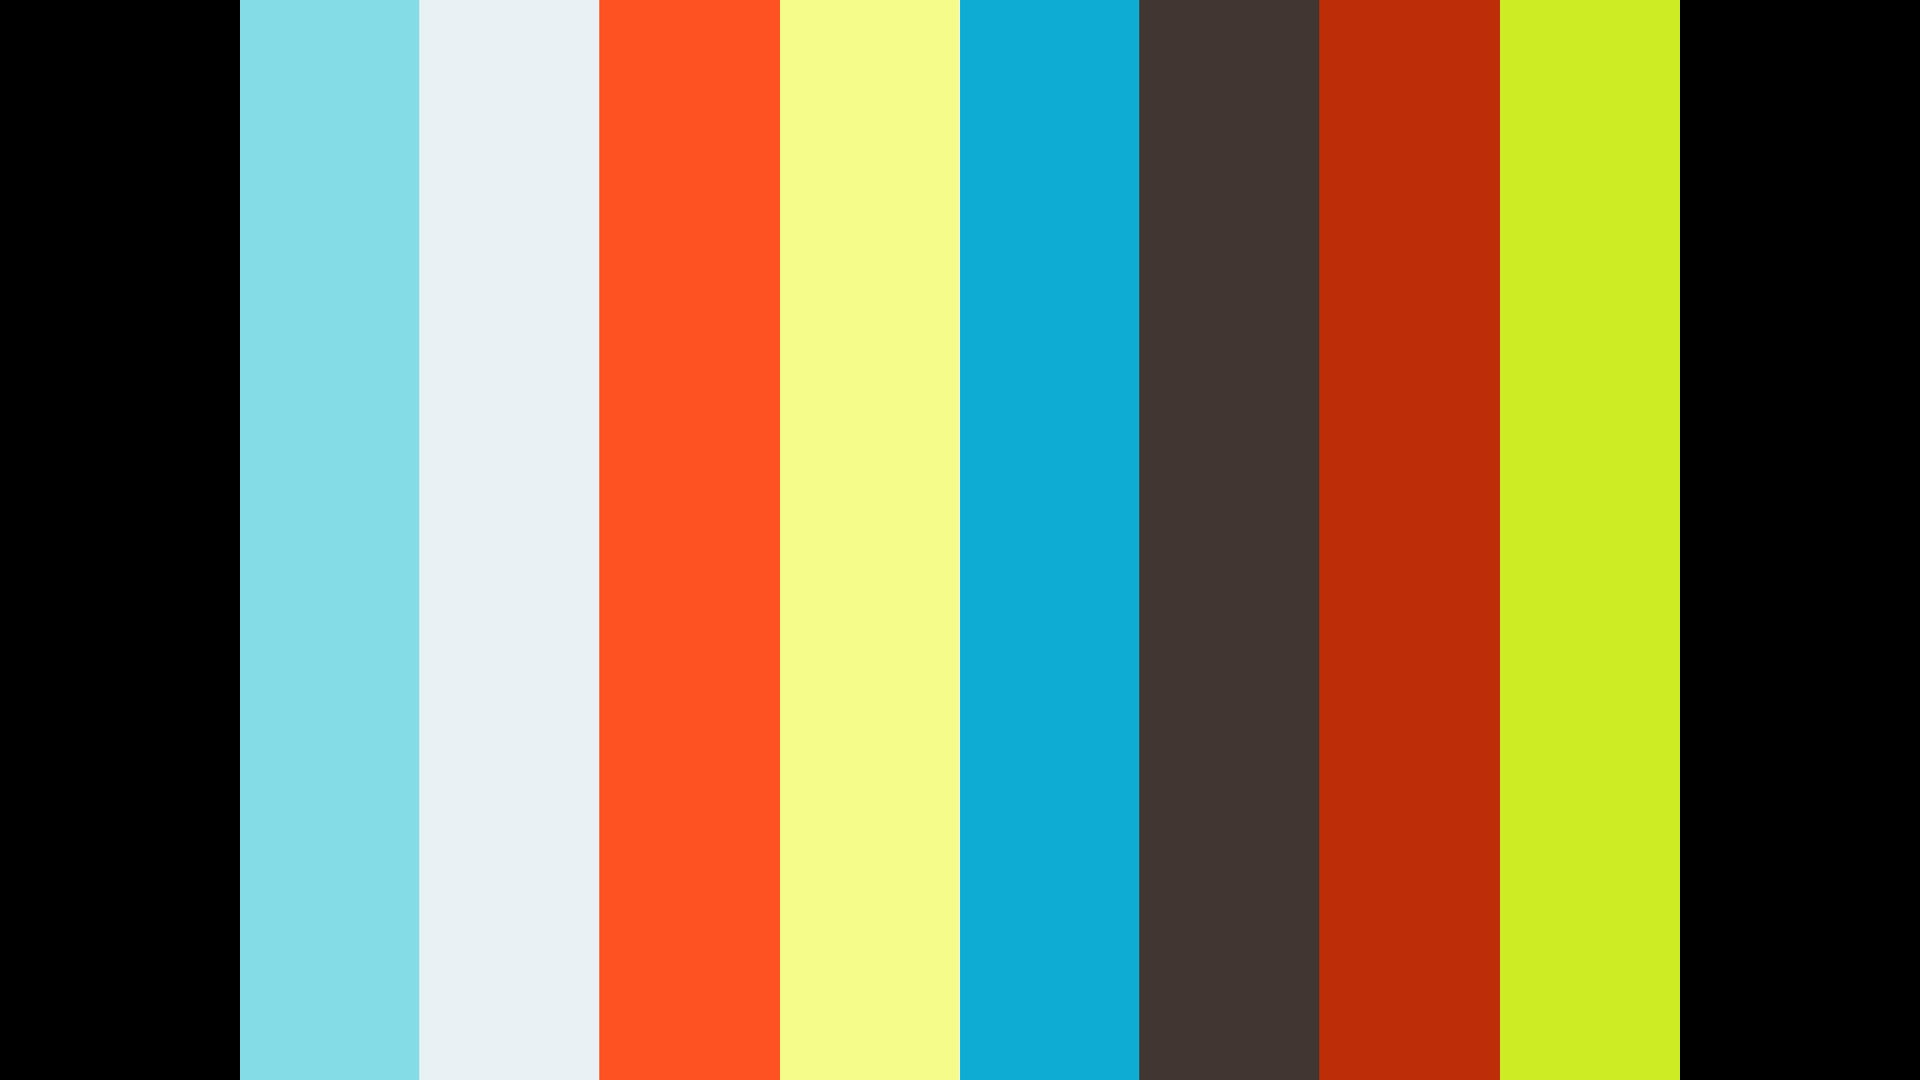 v2 Track - The Future of Flight Following